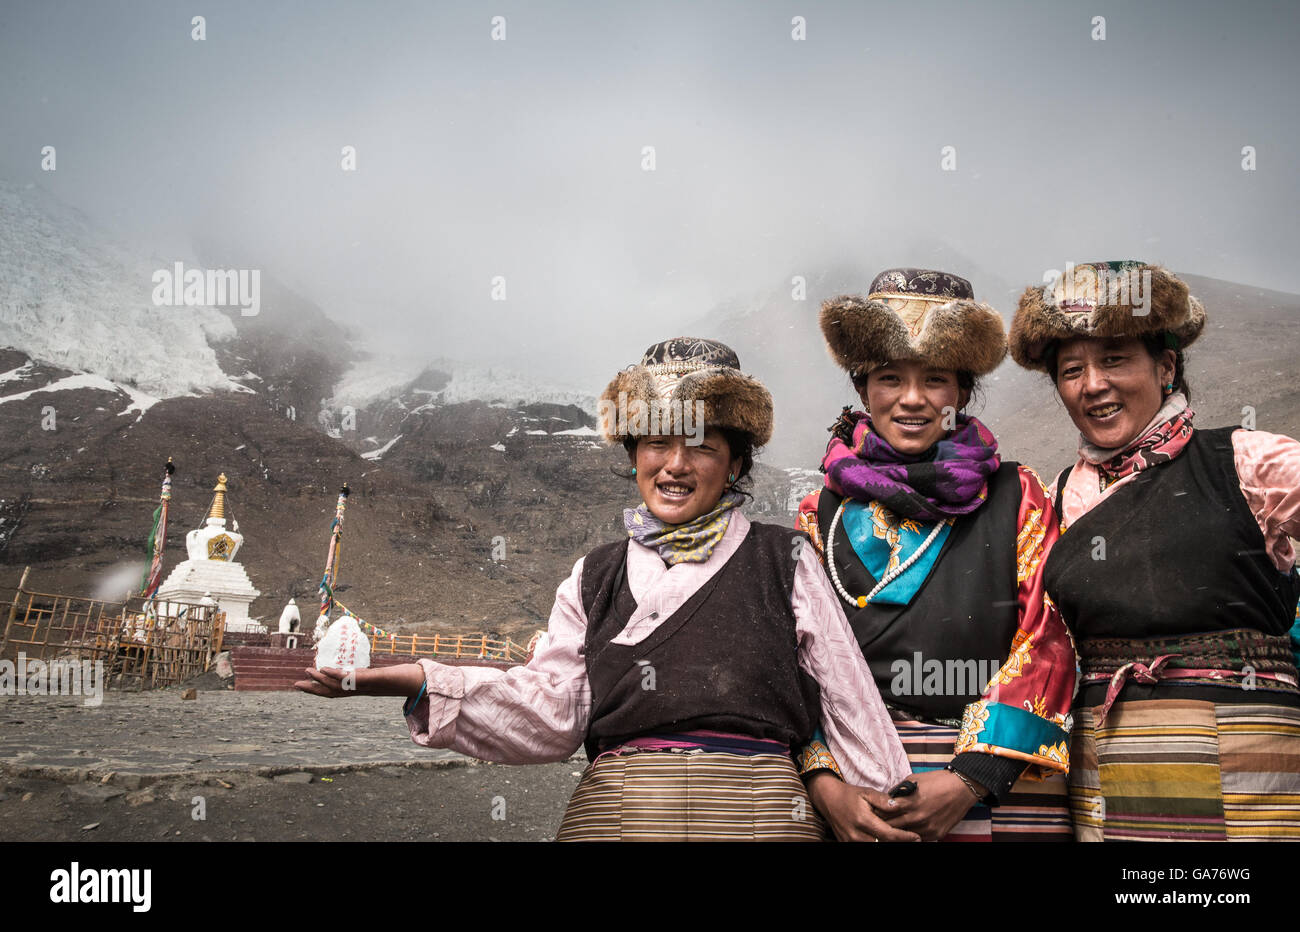 Tibetan women in traditional costumes welcome visitors at Silima mountain scenic area. Silima mountain is in Gyantse, - Stock Image